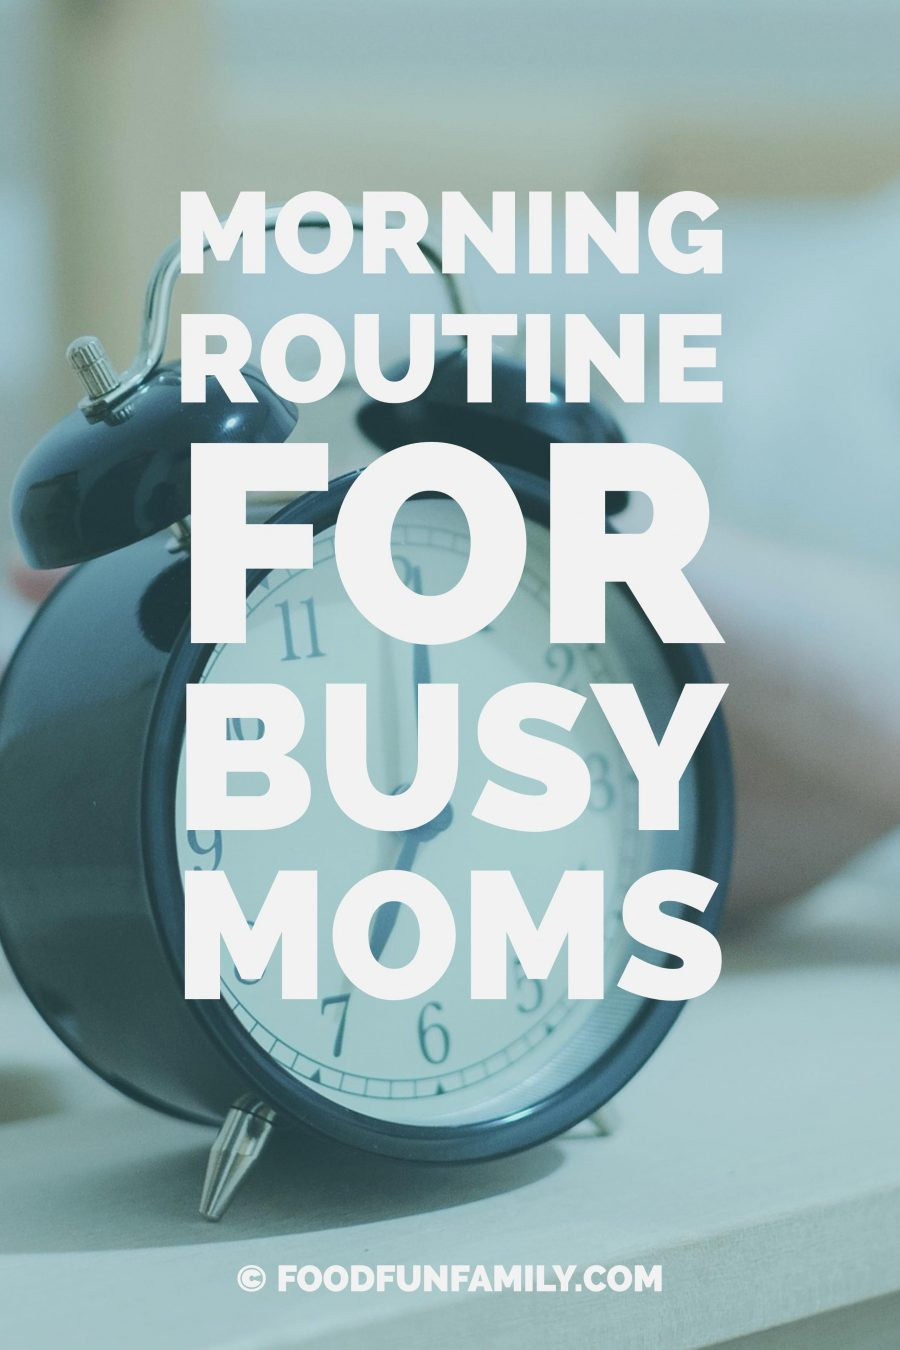 Morning Routine For Busy Moms: How to Start Your Day Off Right